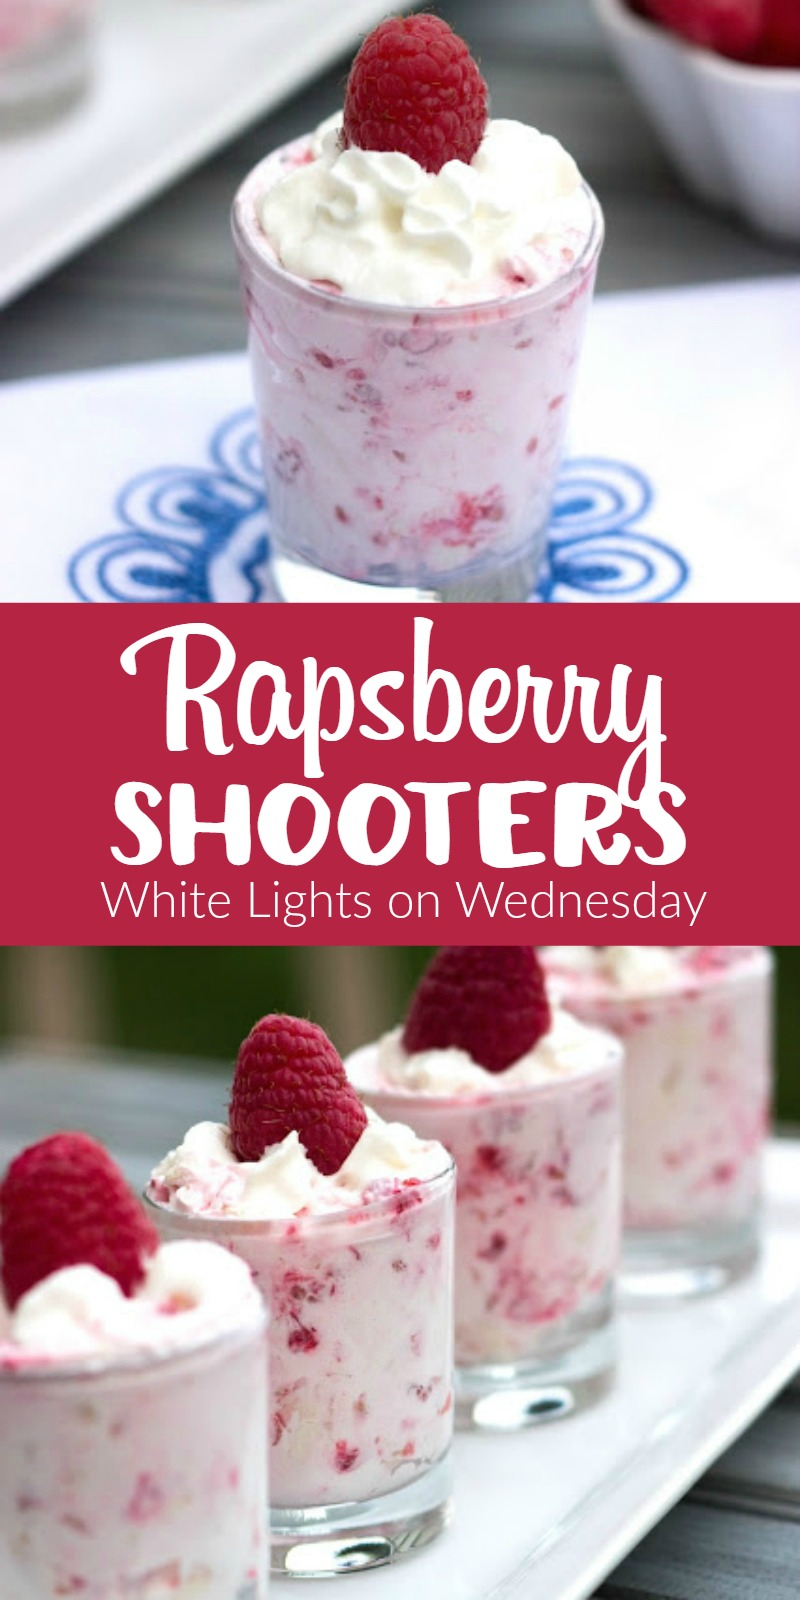 Raspberry Shooters | White Lights on Wednesday